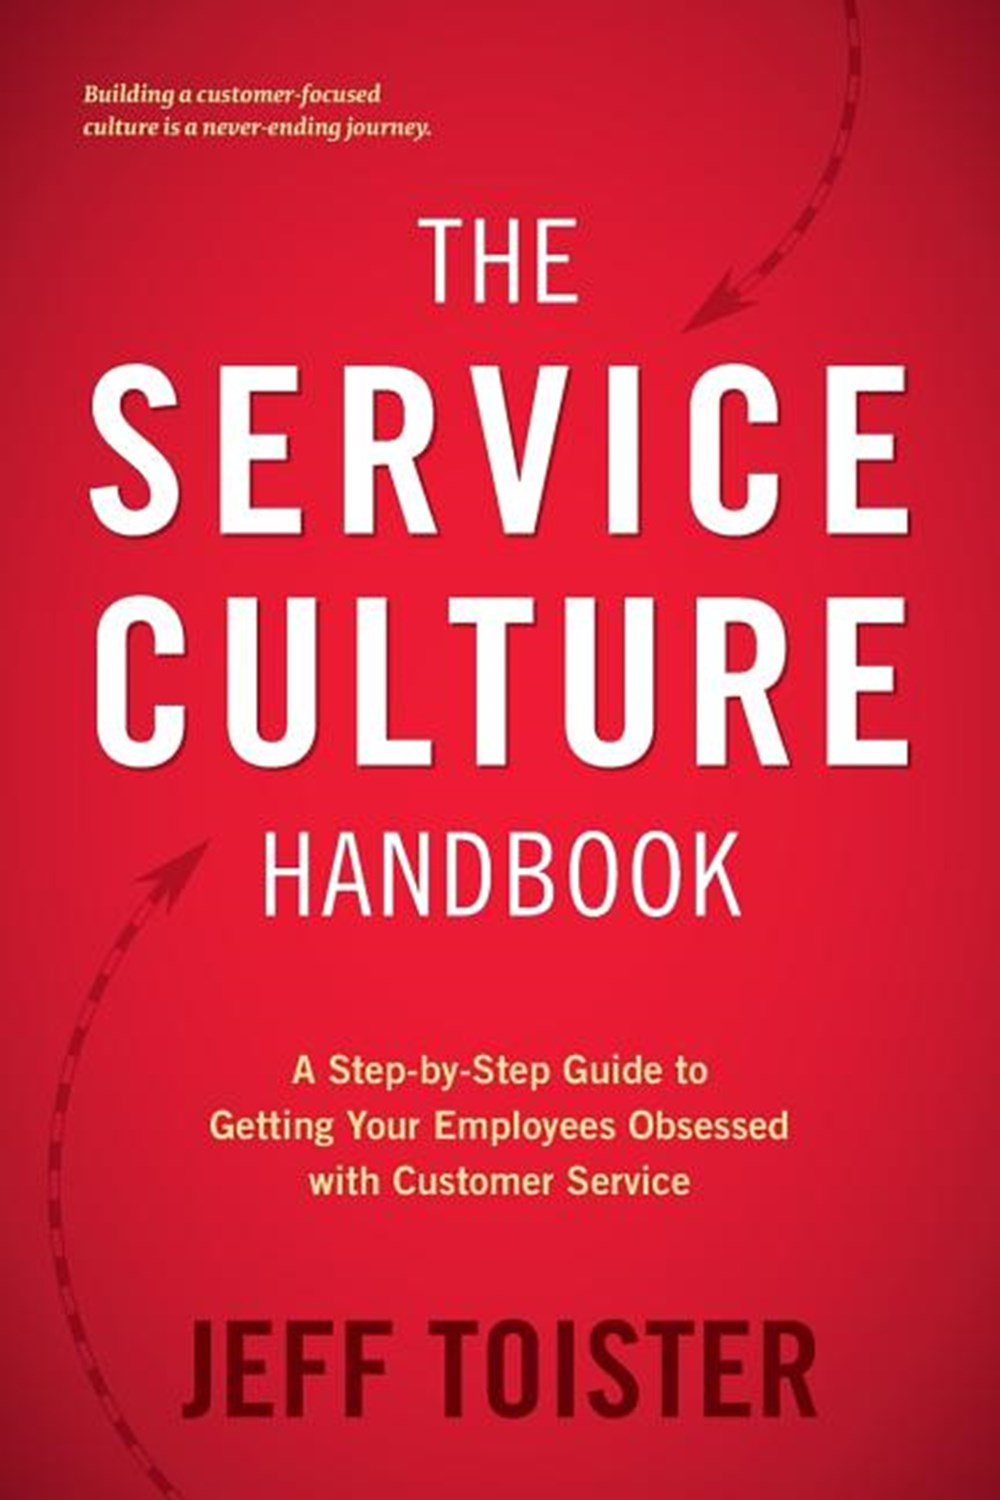 Service Culture Handbook A Step-by-Step Guide to Getting Your Employees Obsessed with Customer Servi